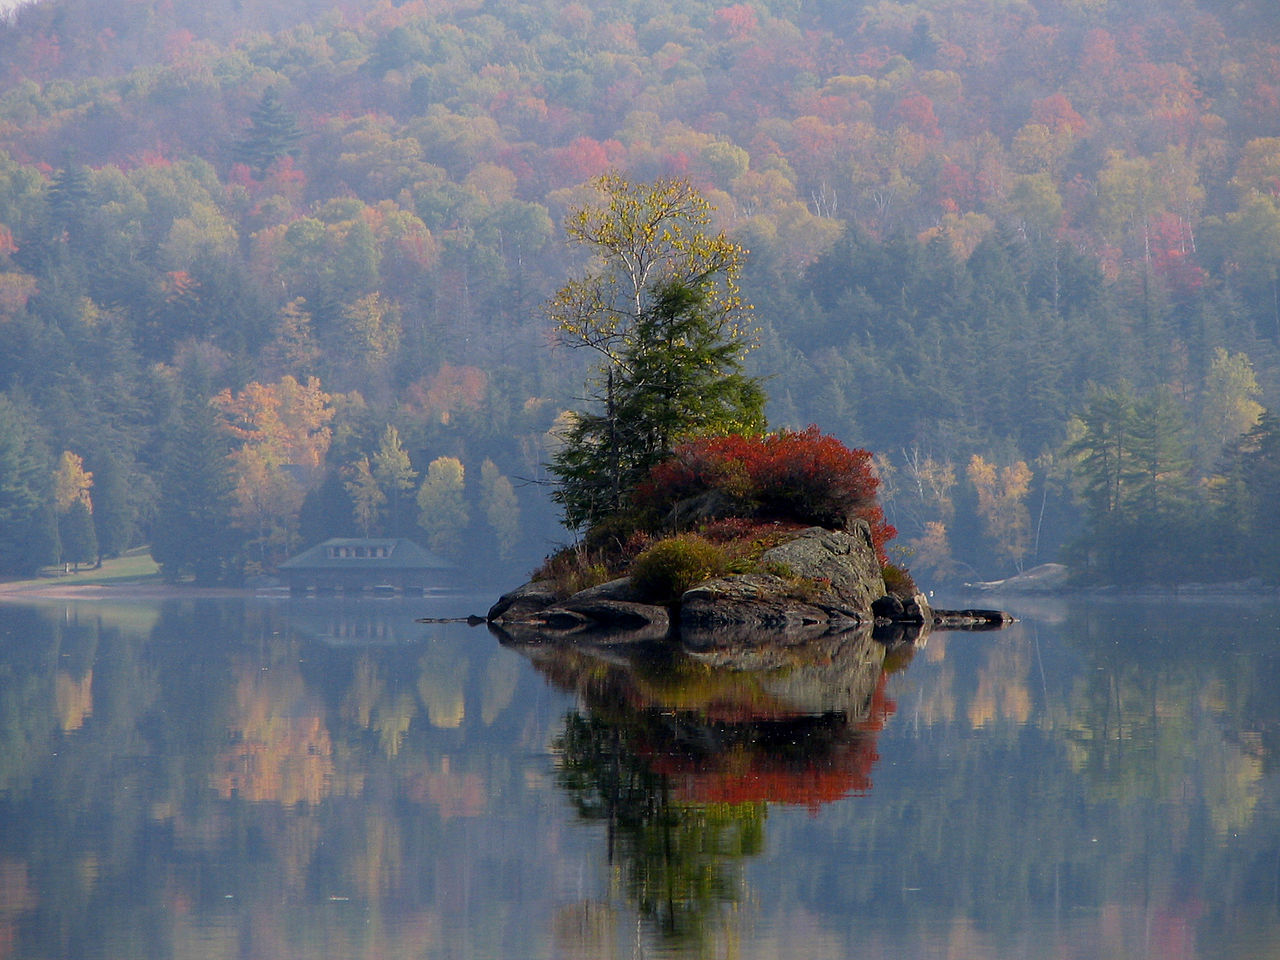 1280px-Small_Island_in_Lower_Saranac_Lake.jpg